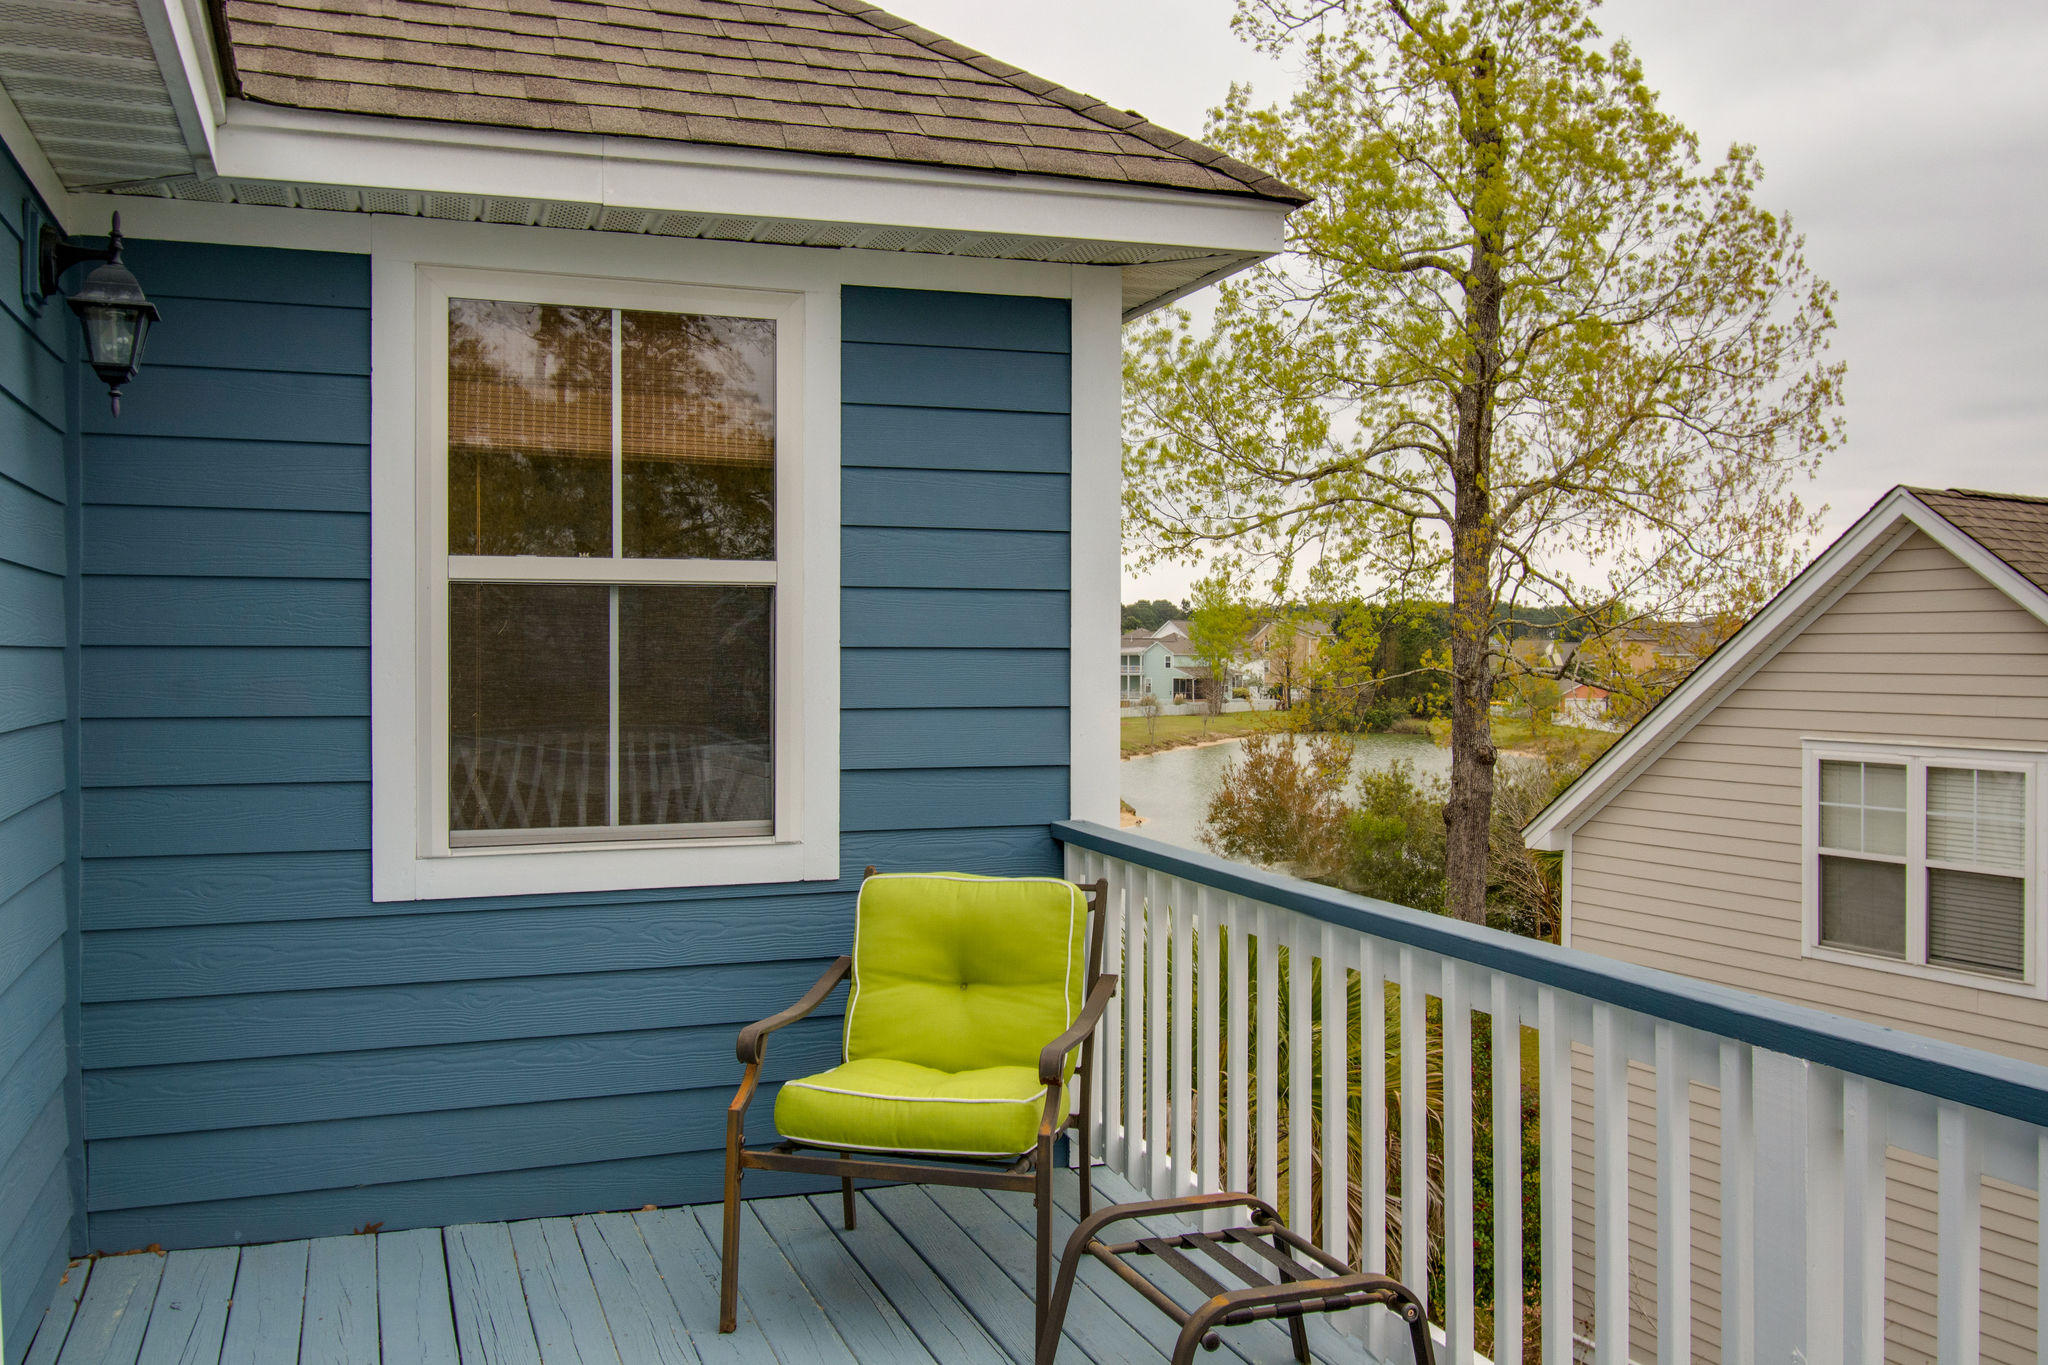 Rivertowne On The Wando Homes For Sale - 2226 Marsh, Mount Pleasant, SC - 33